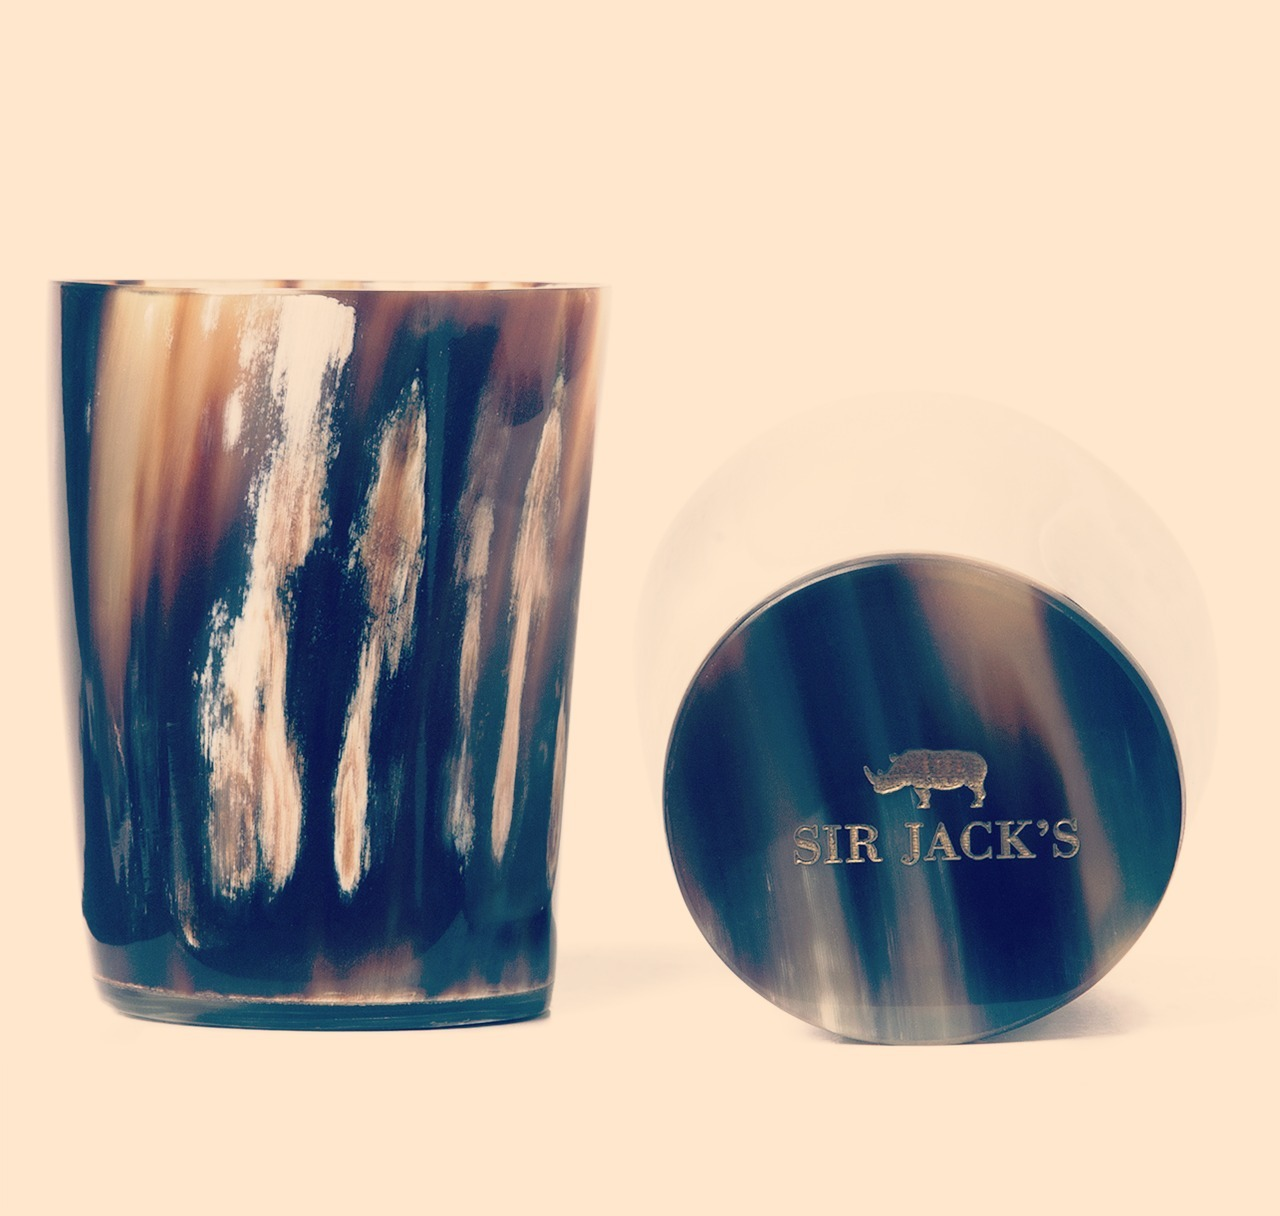 whereisthecoool:  Ox Horn Whiskey Tumblers Elevate your bar with these ox horn tumblers from Sir Jack's. Handcrafted in England from natural horn and polished to perfection, you'll be looking for any reason to bust these out. Sold in sets of two, because good whiskey goes best with good company.  (Via Surplus)